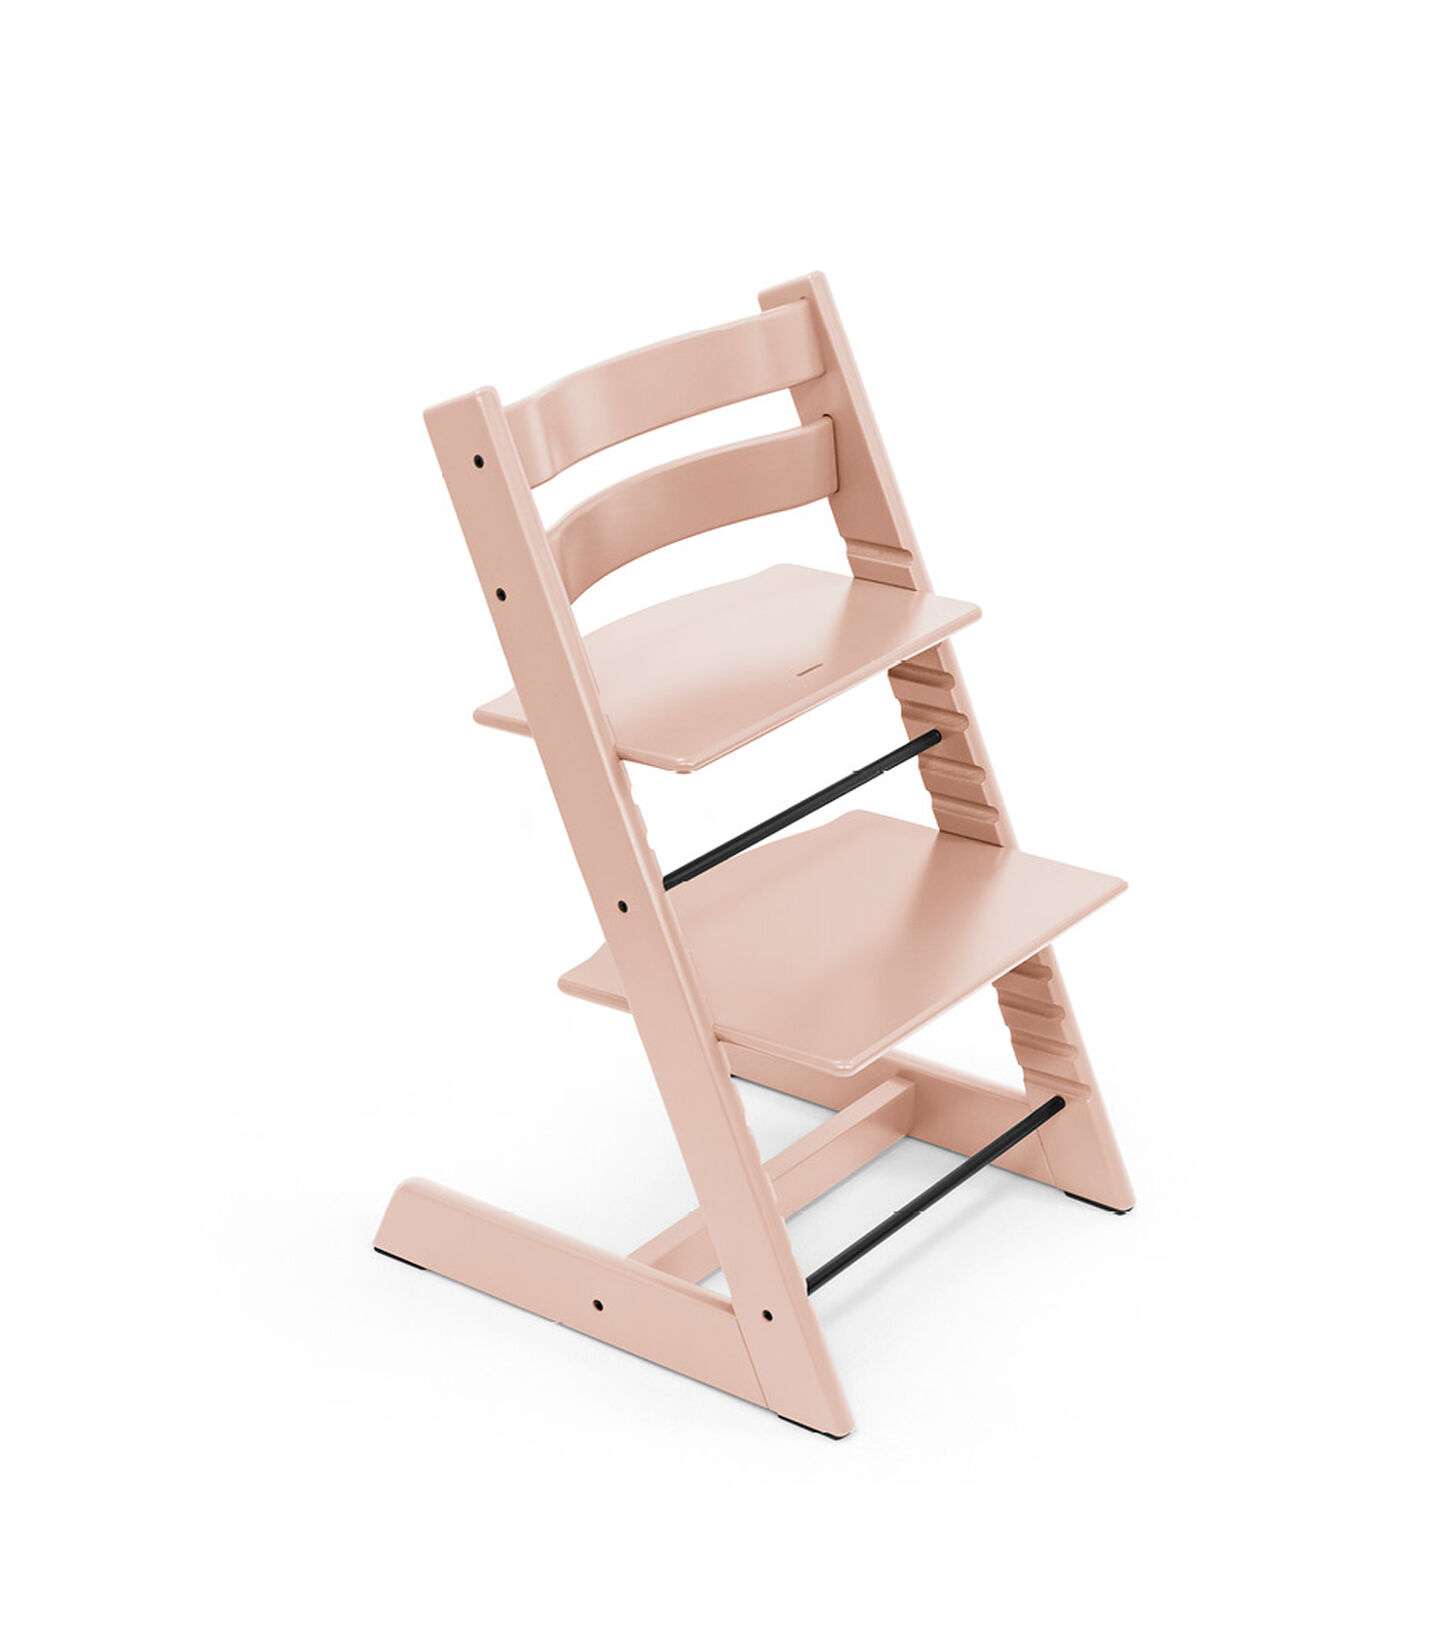 Tripp Trapp® Chair Serene Pink, Serene Pink, mainview